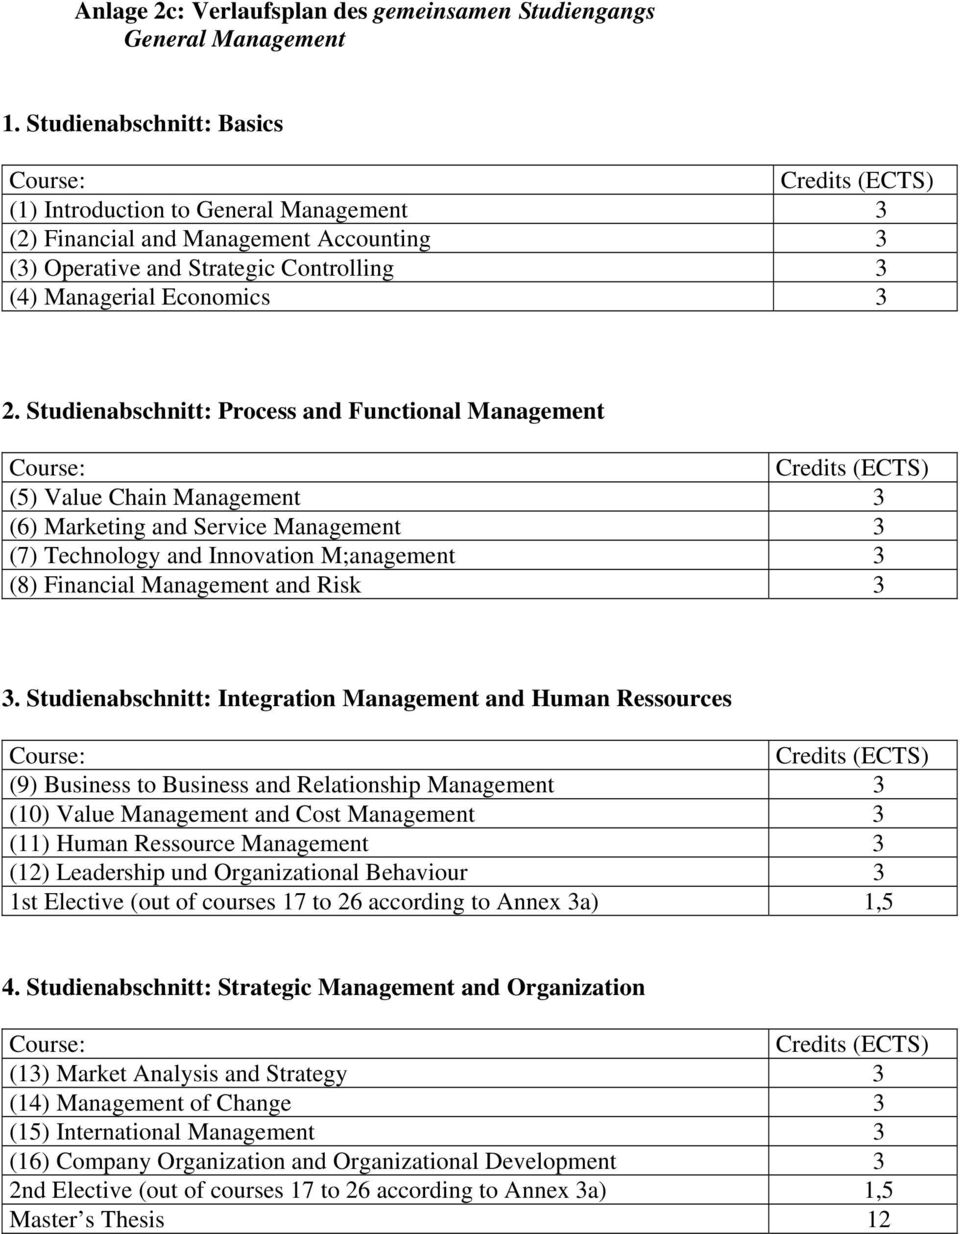 2. Studienabschnitt: Process and Functional Management Course: Credits (ECTS) (5) Value Chain Management 3 (6) Marketing and Service Management 3 (7) Technology and Innovation M;anagement 3 (8)